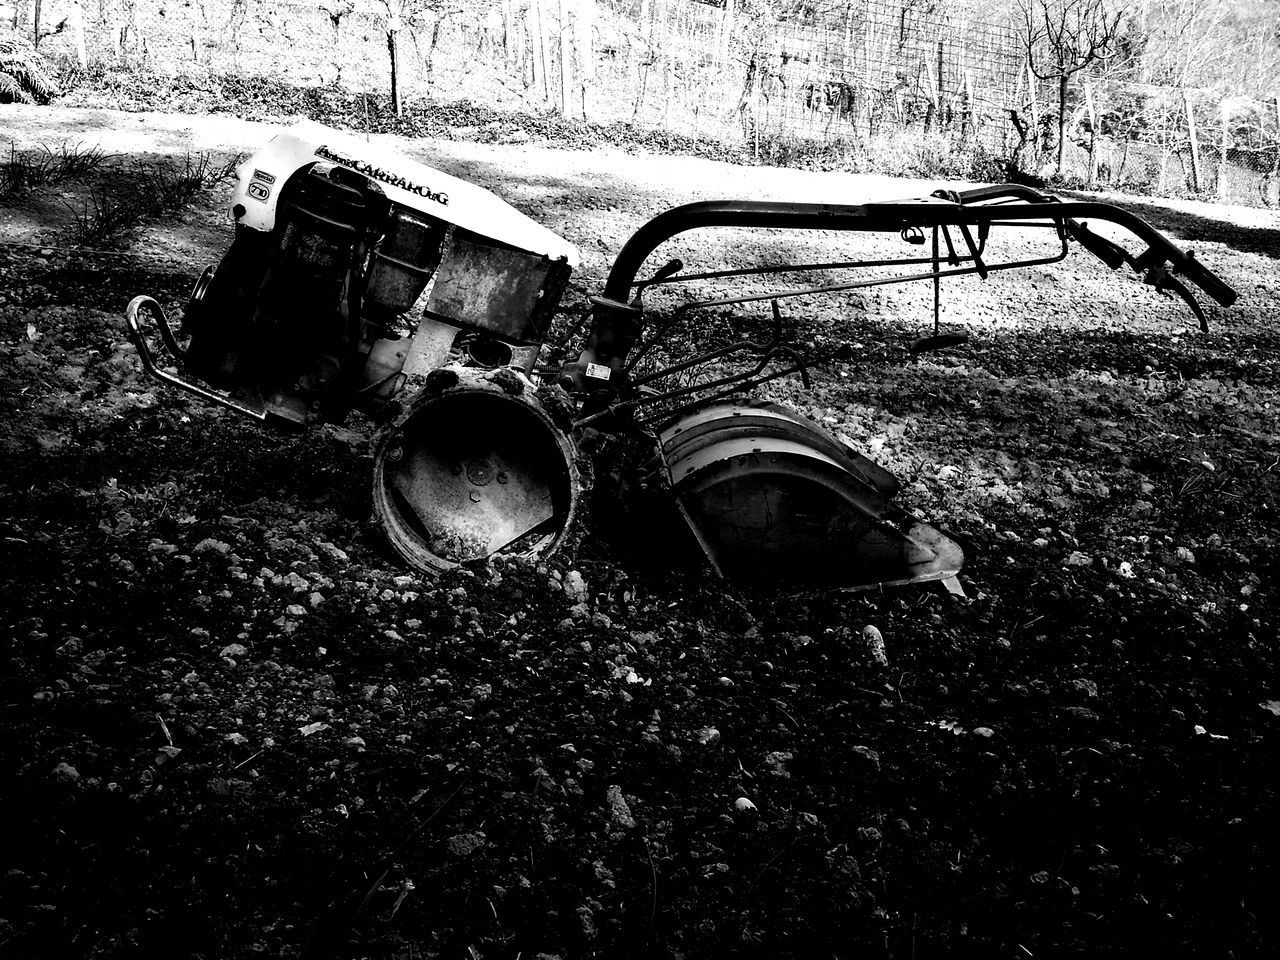 abandoned, damaged, obsolete, day, run-down, outdoors, no people, destruction, bad condition, grass, nature, close-up